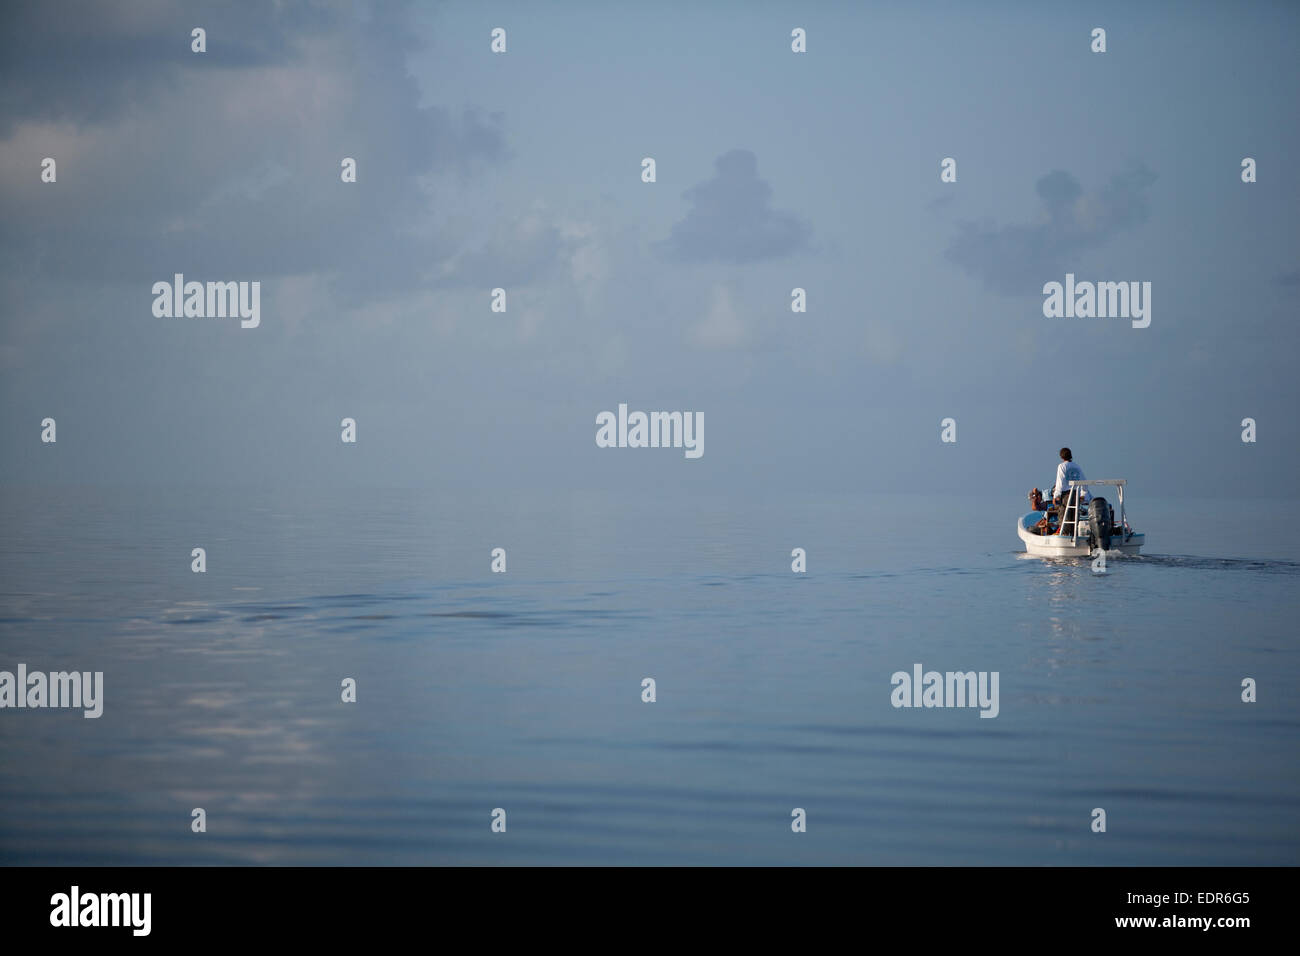 a flats boat motors out into calm ocean water - Stock Image